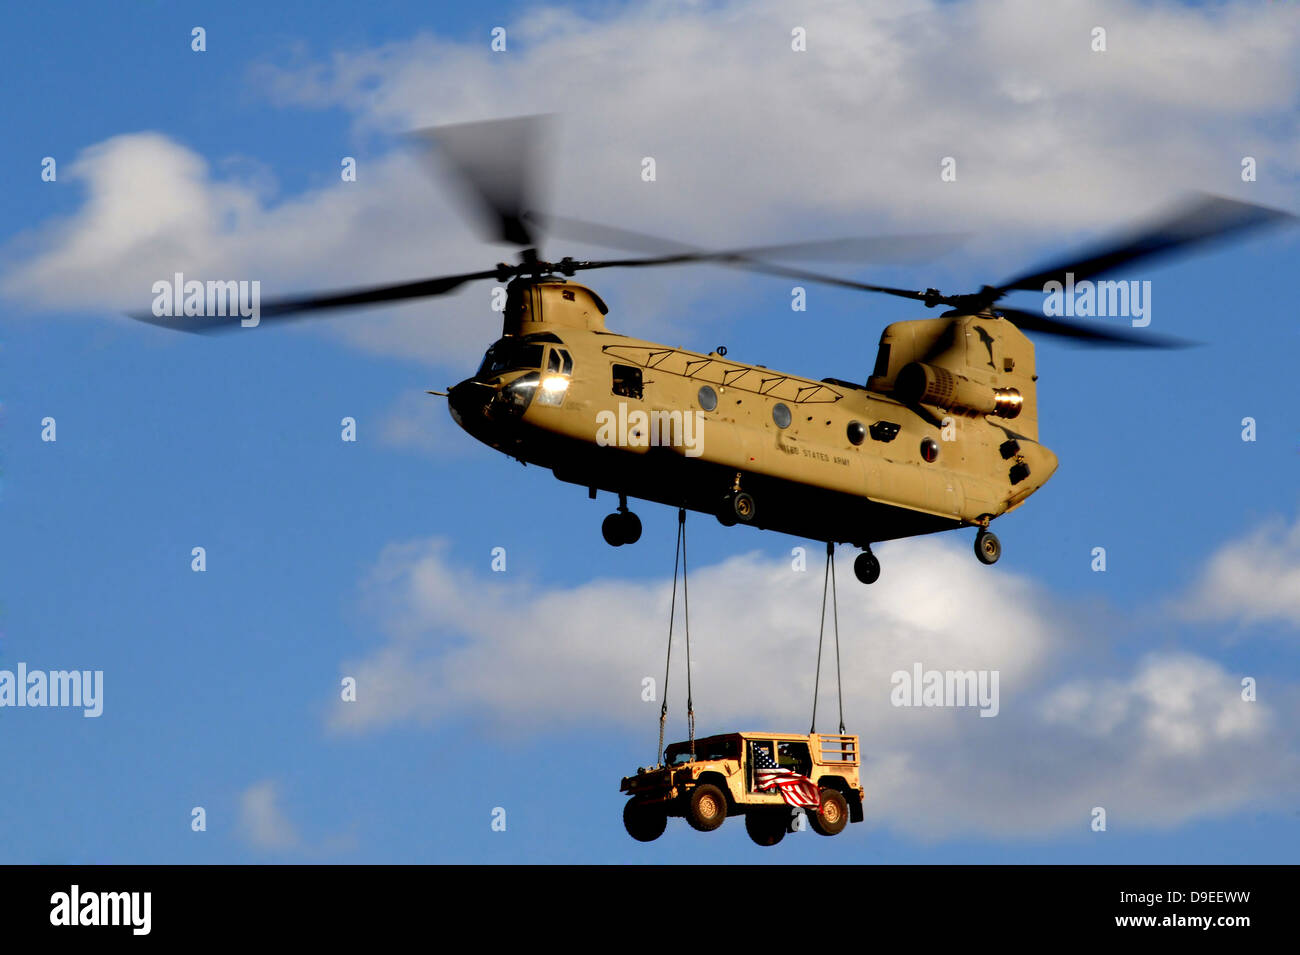 A U.S. Army CH-47 Chinook helicopter transports a Humvee. - Stock Image